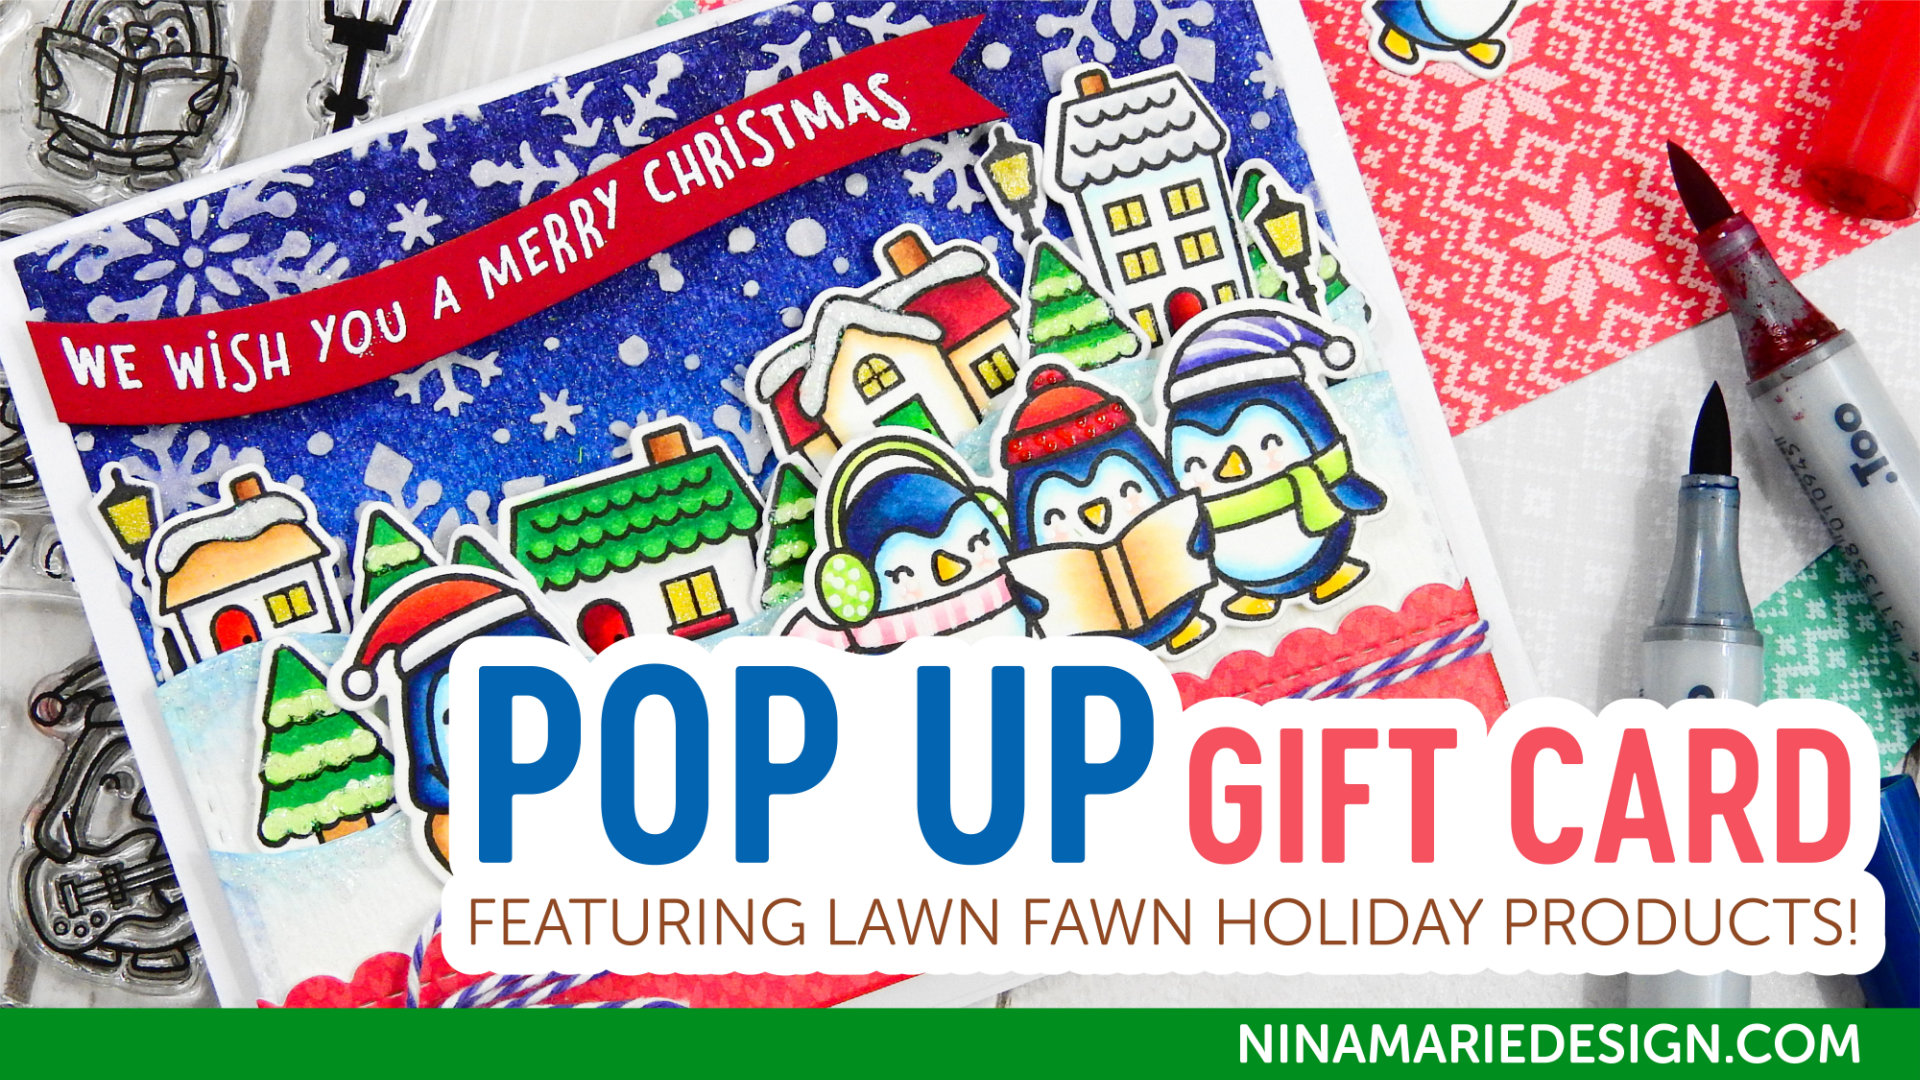 Studio Monday with Nina-Marie: Lawn Fawn Pop Up Holiday Gift Card | Nina-Marie Design